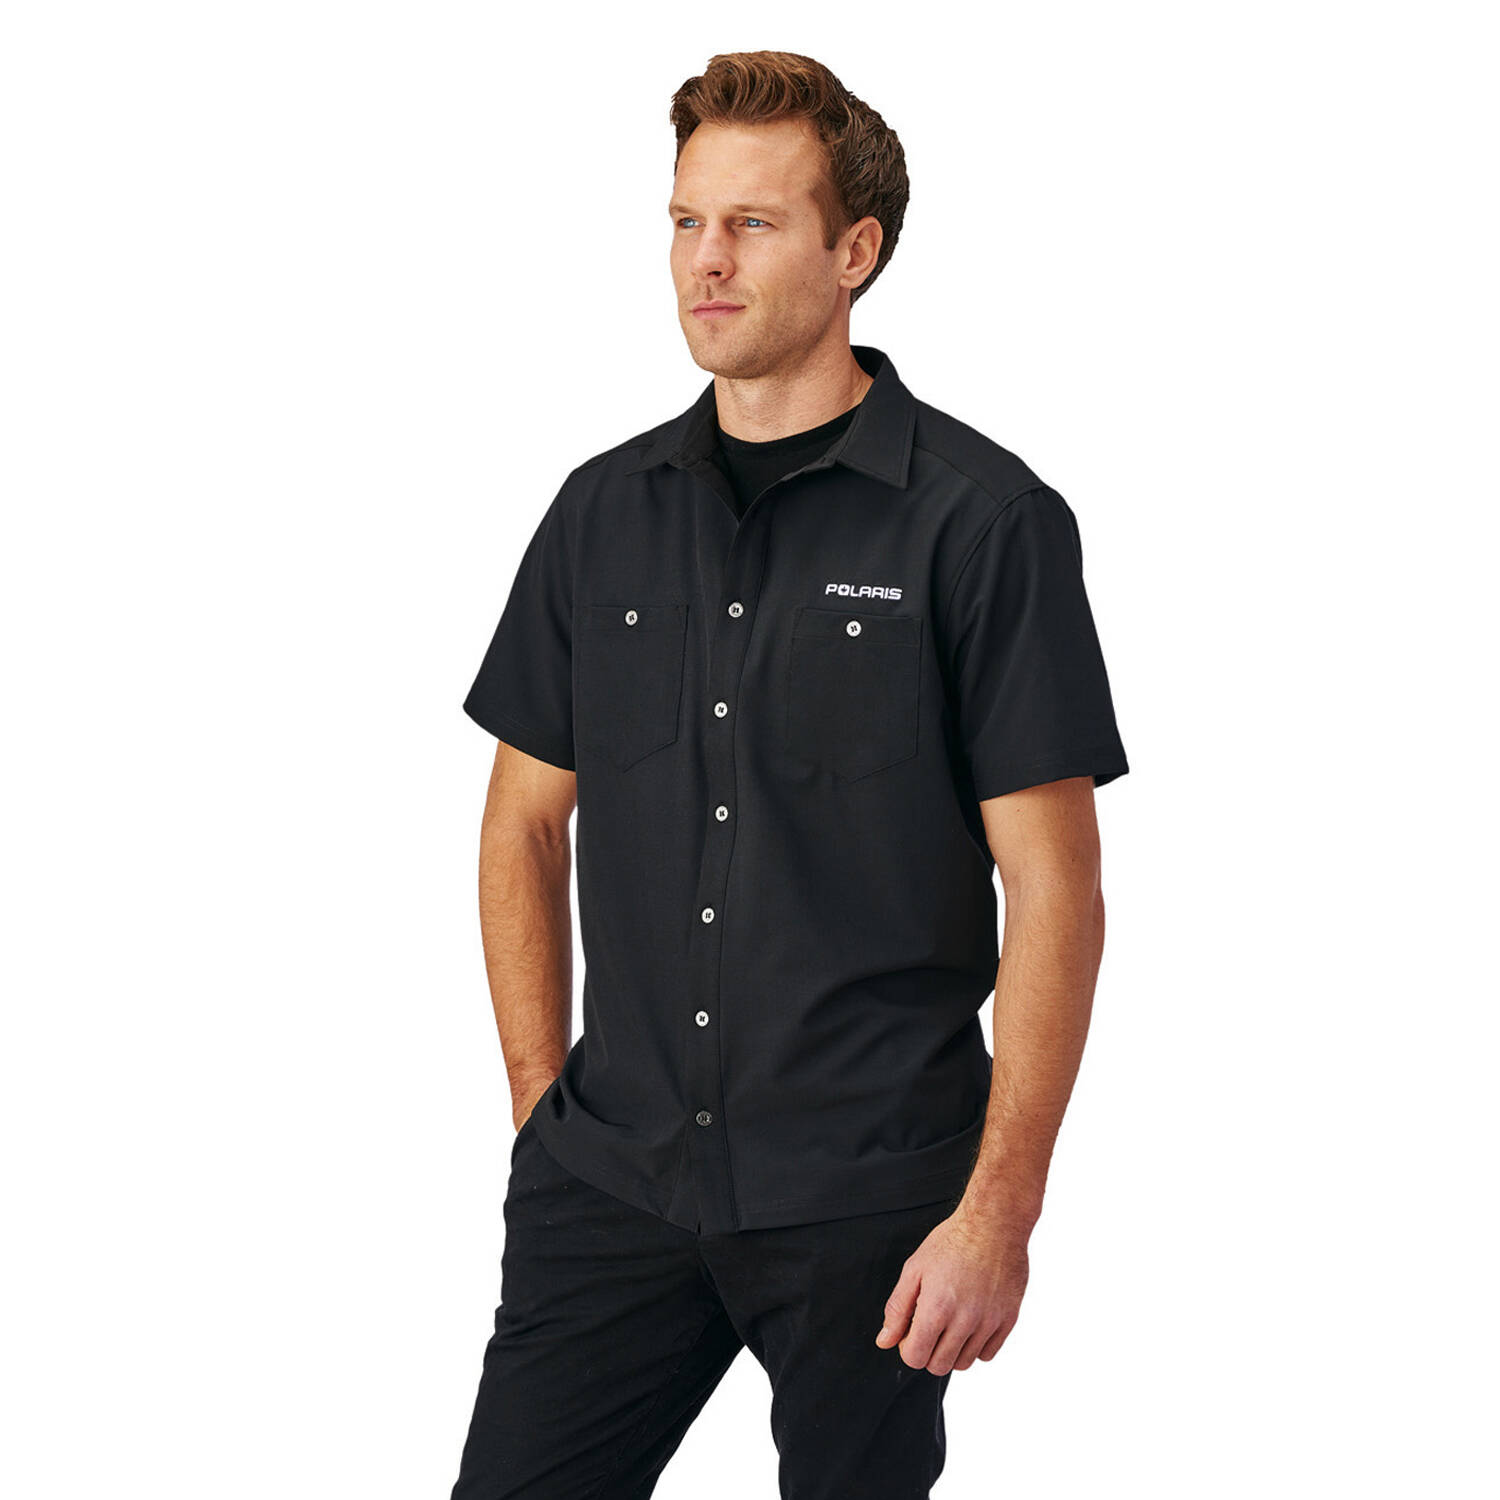 Men's Short-Sleeve Tech Pit Shirt with Polaris® Logo, Black